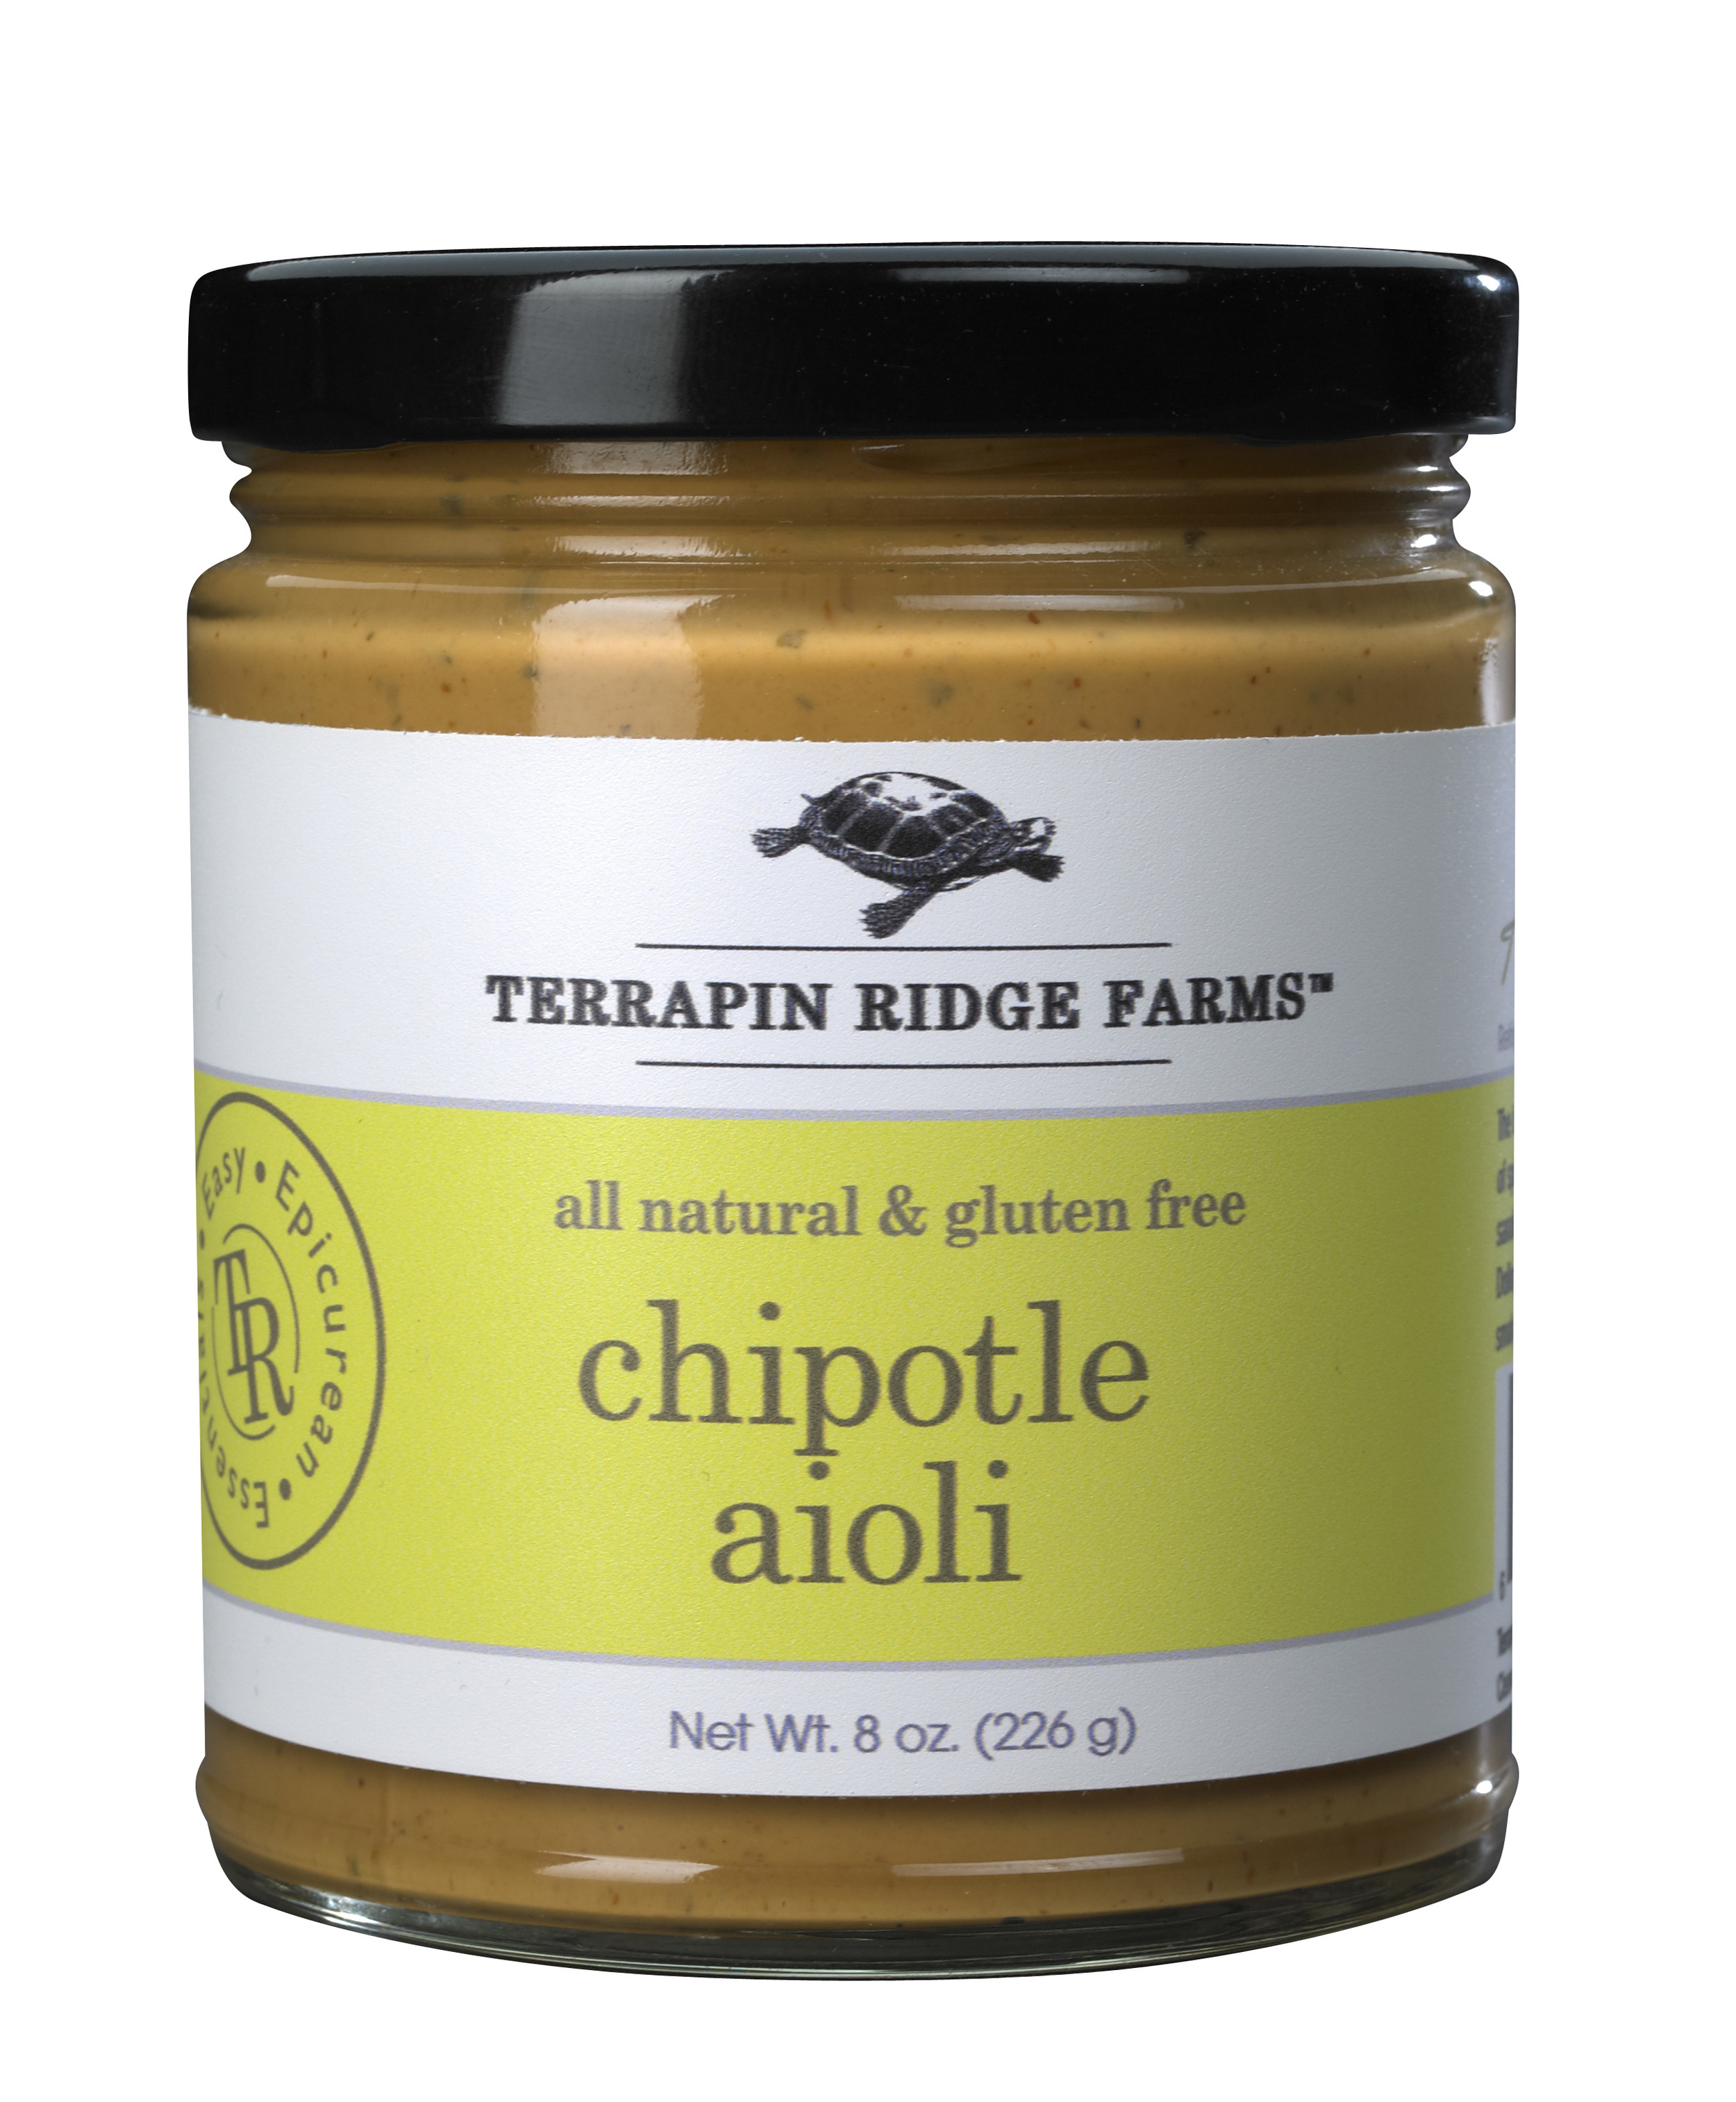 TERRAPIN RIDGE FARMS: Chipotle Aioli